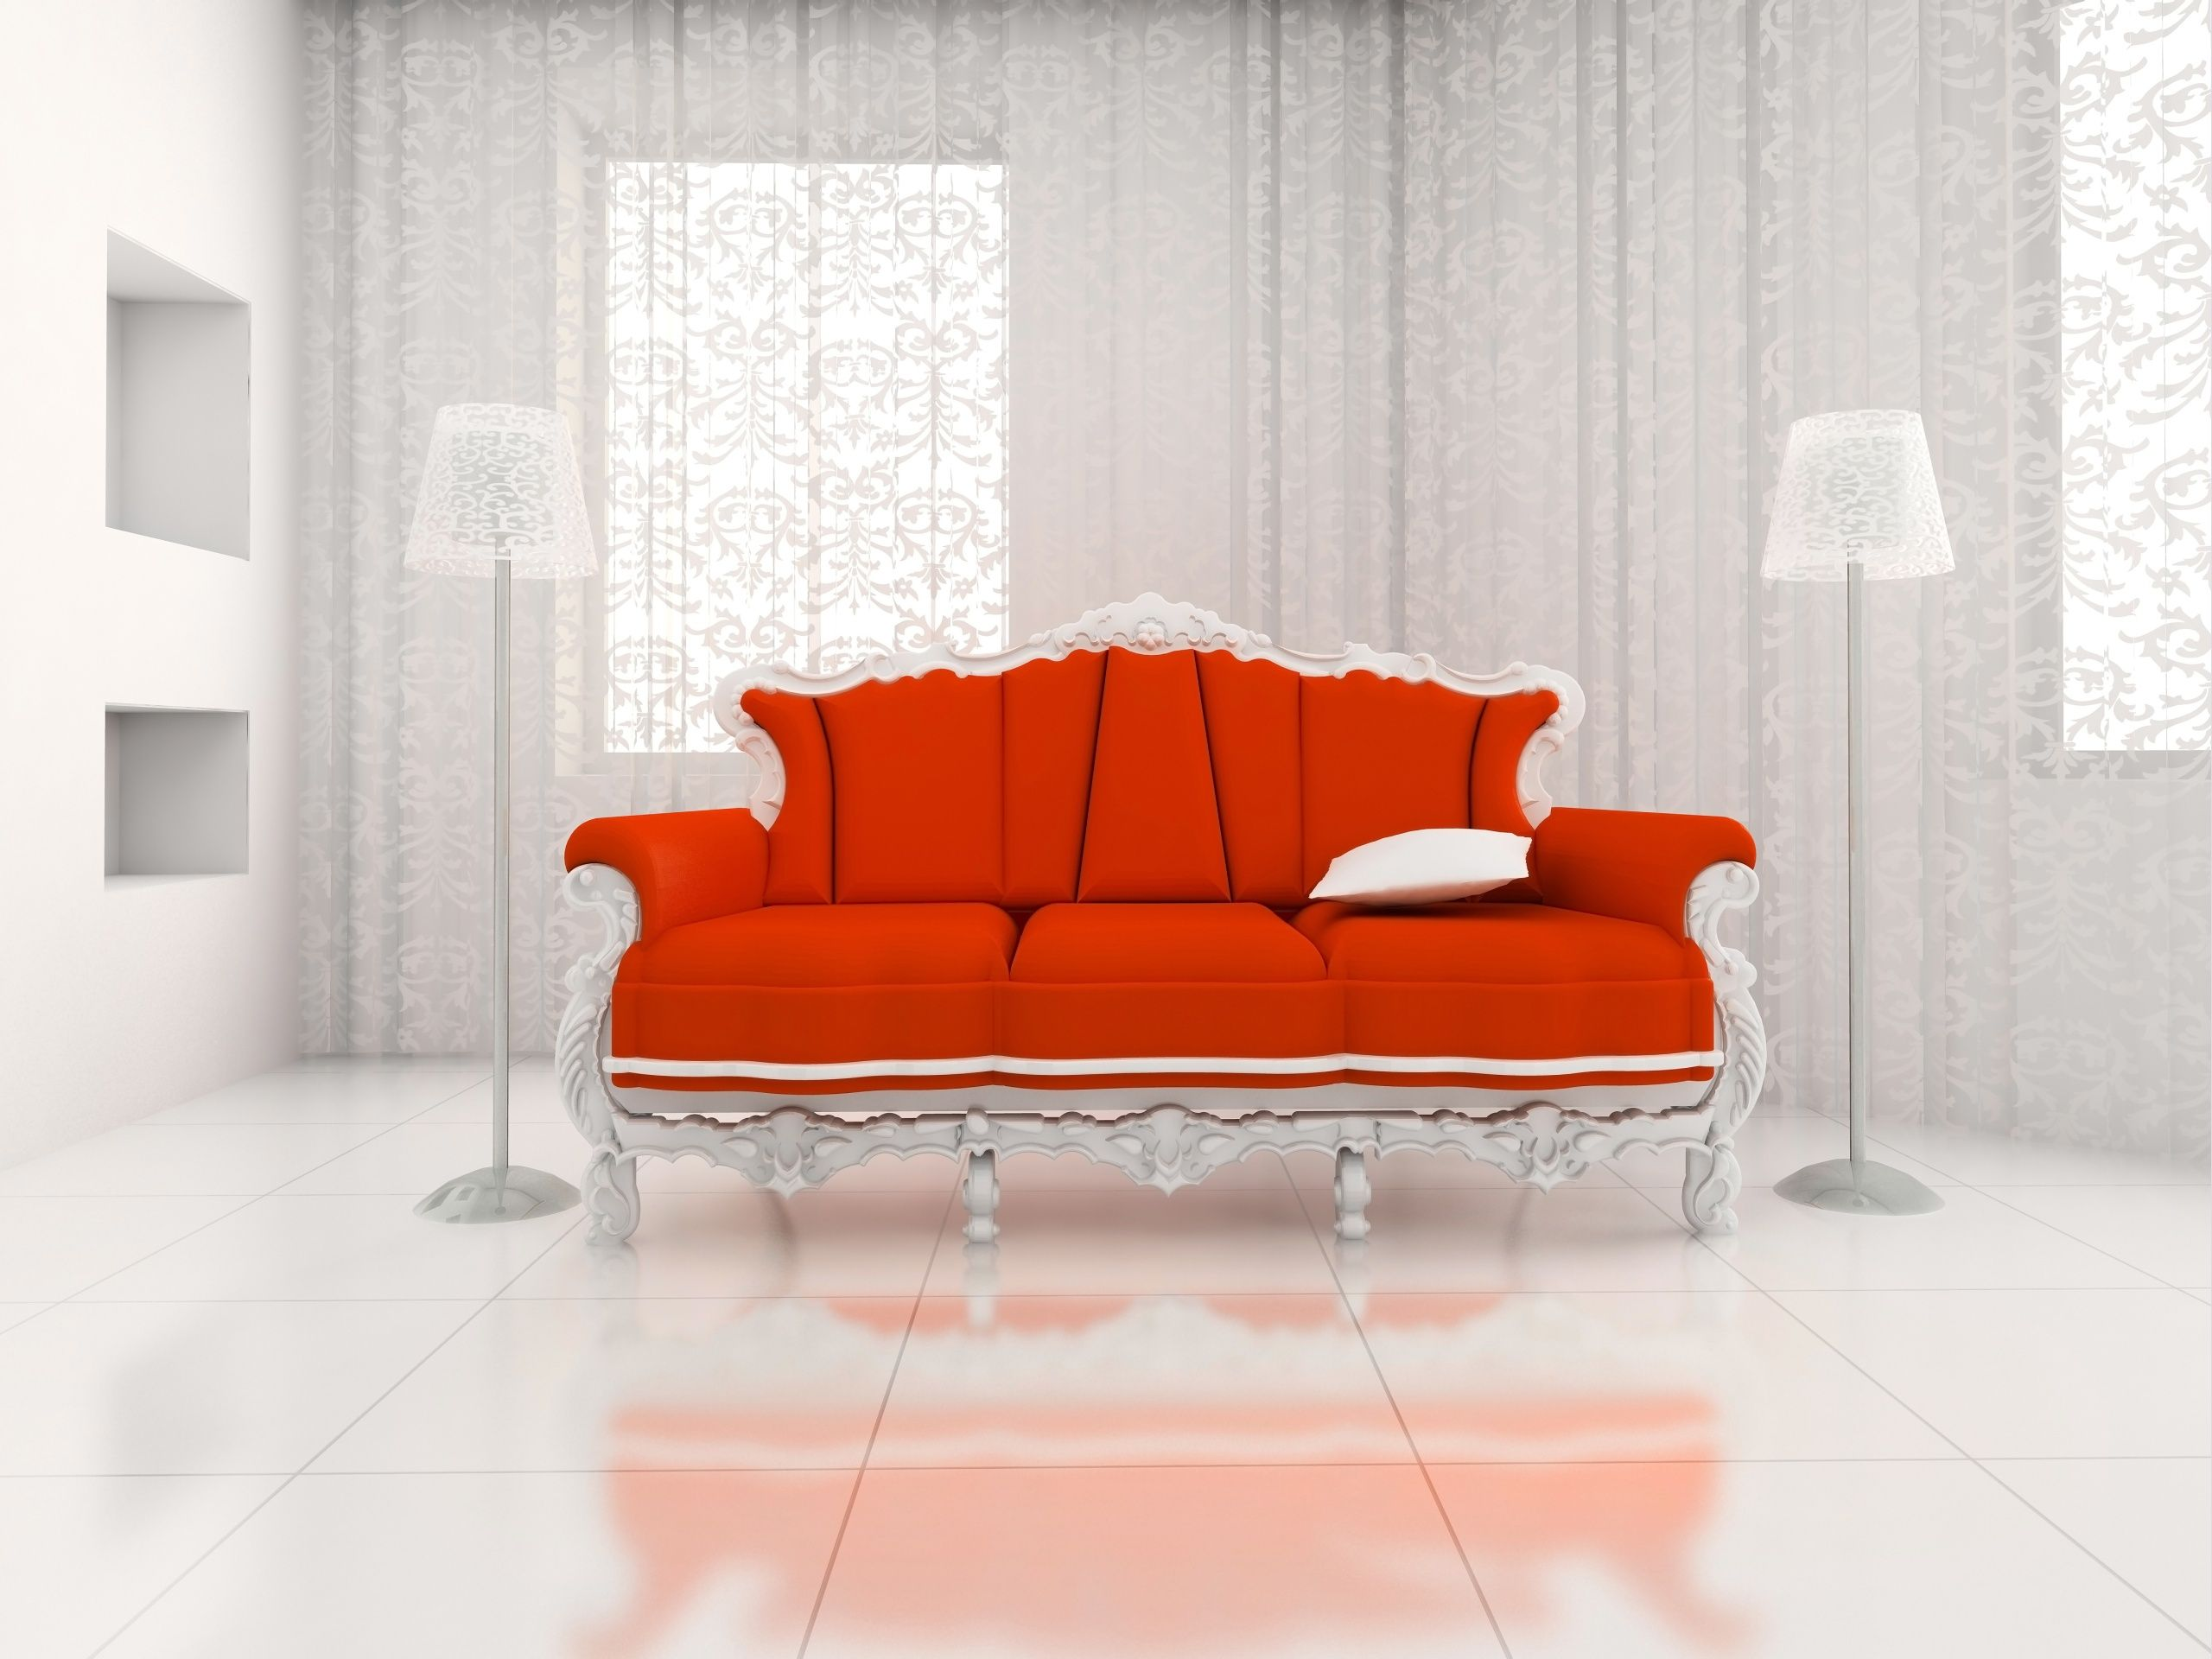 Http://img.wallpaperstock.net:81/red Sofa On White  Wallpapers_17616_2560x1920